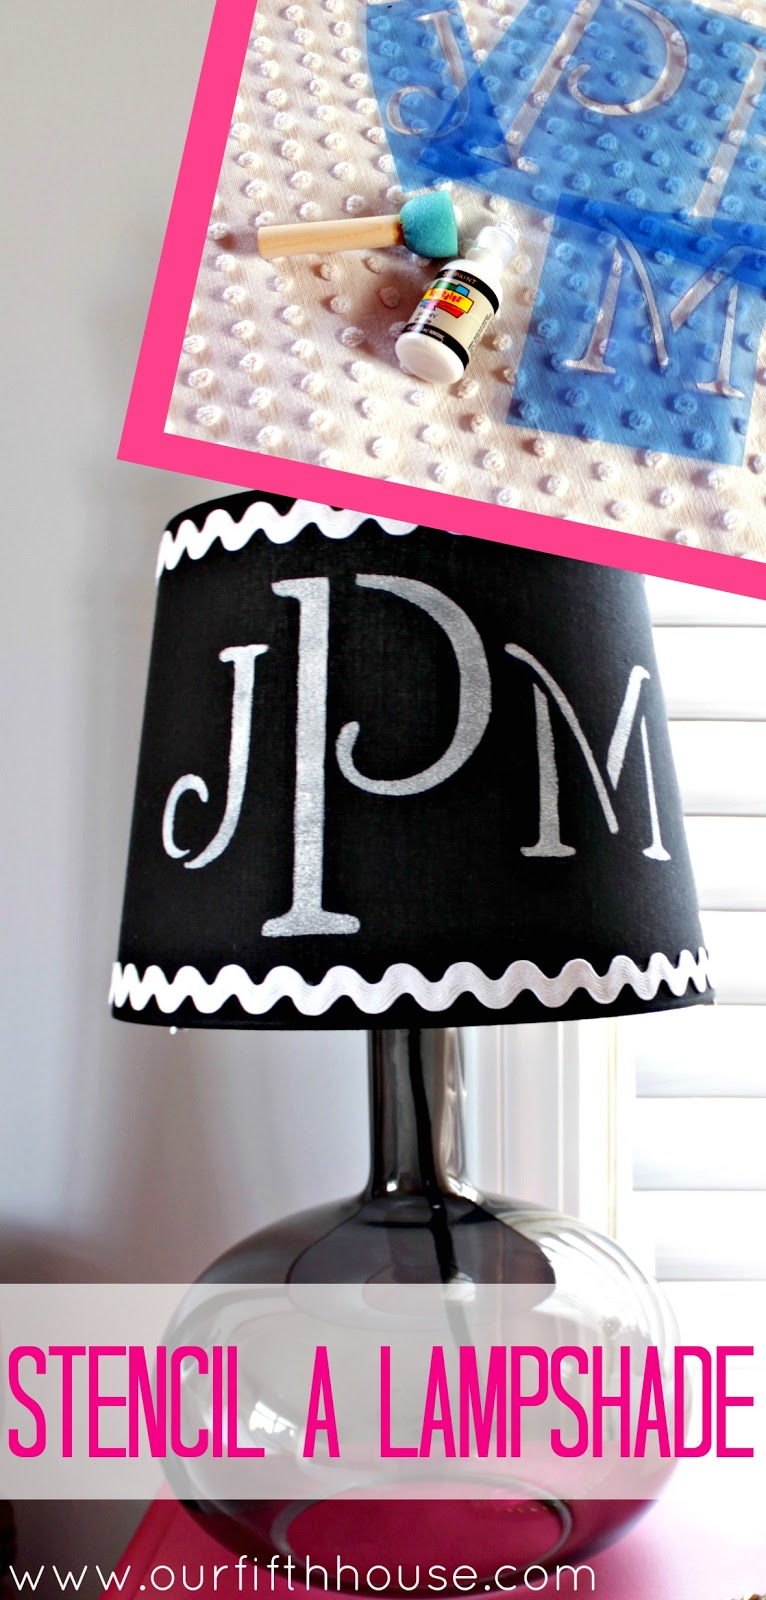 Diy monogrammed lamp shade our fifth house diy stenciled lampshade mozeypictures Images